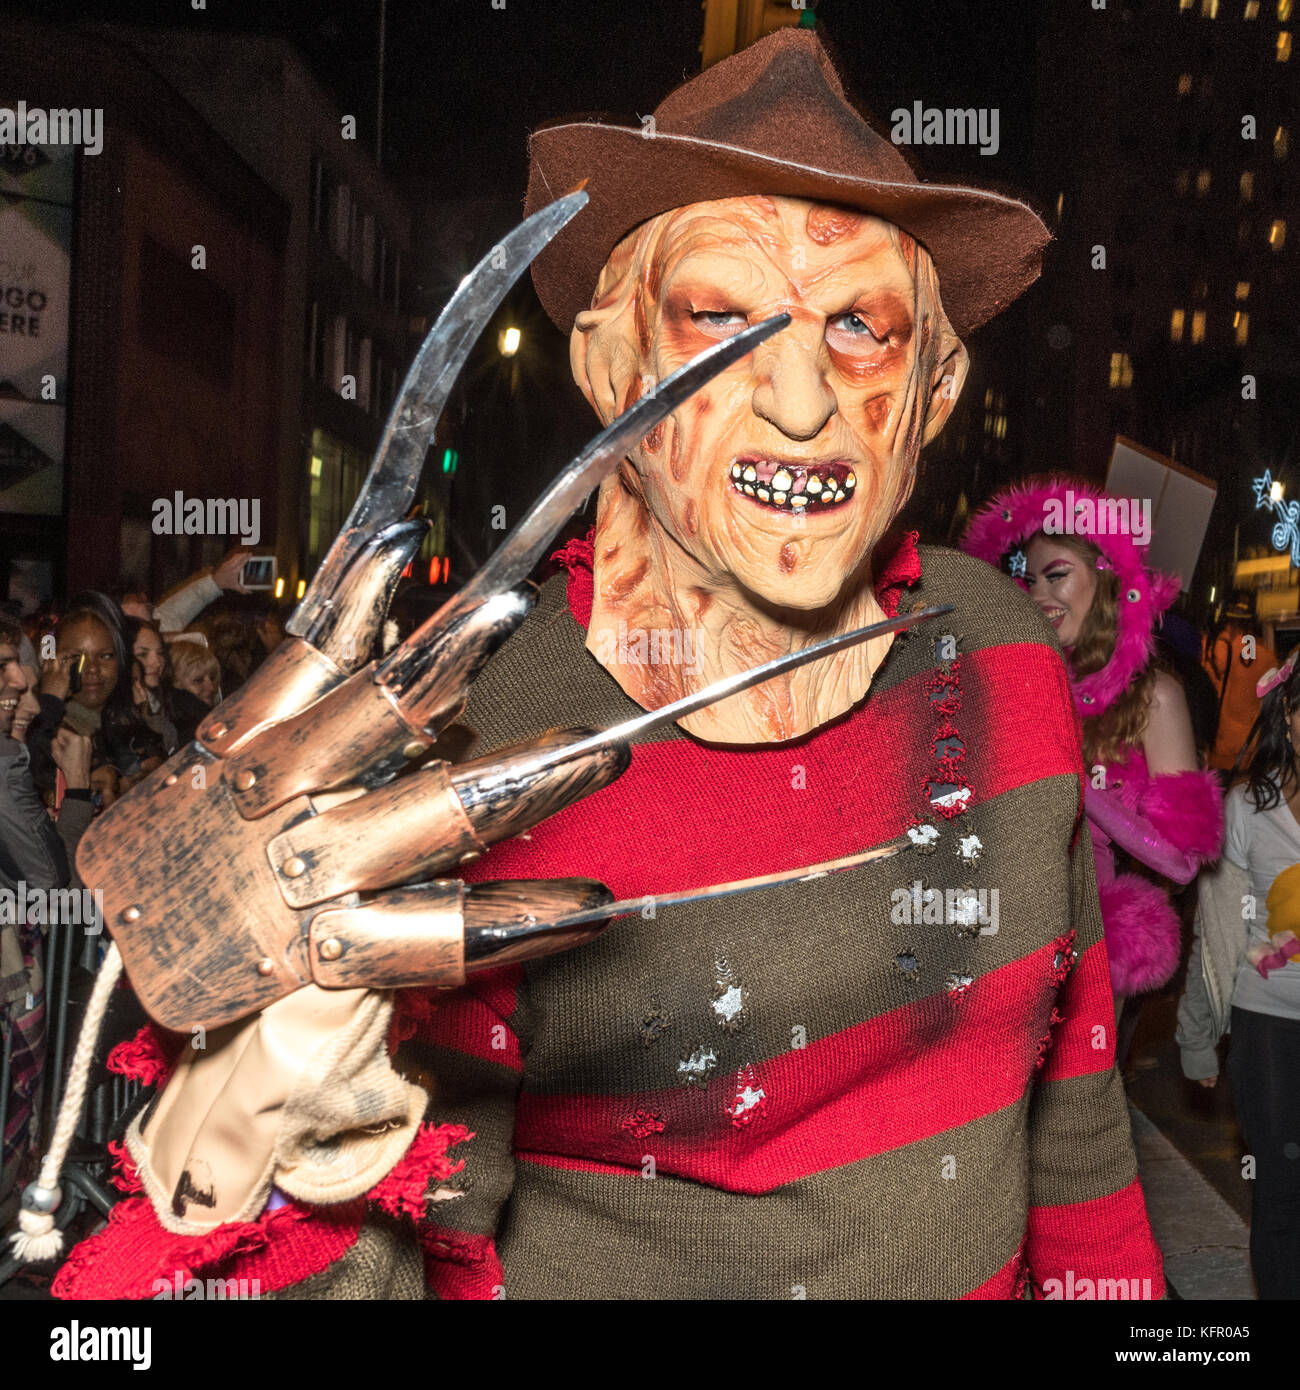 New York, USA. 31st Oct, 2017. A Reveler Wears A Costume Characterized